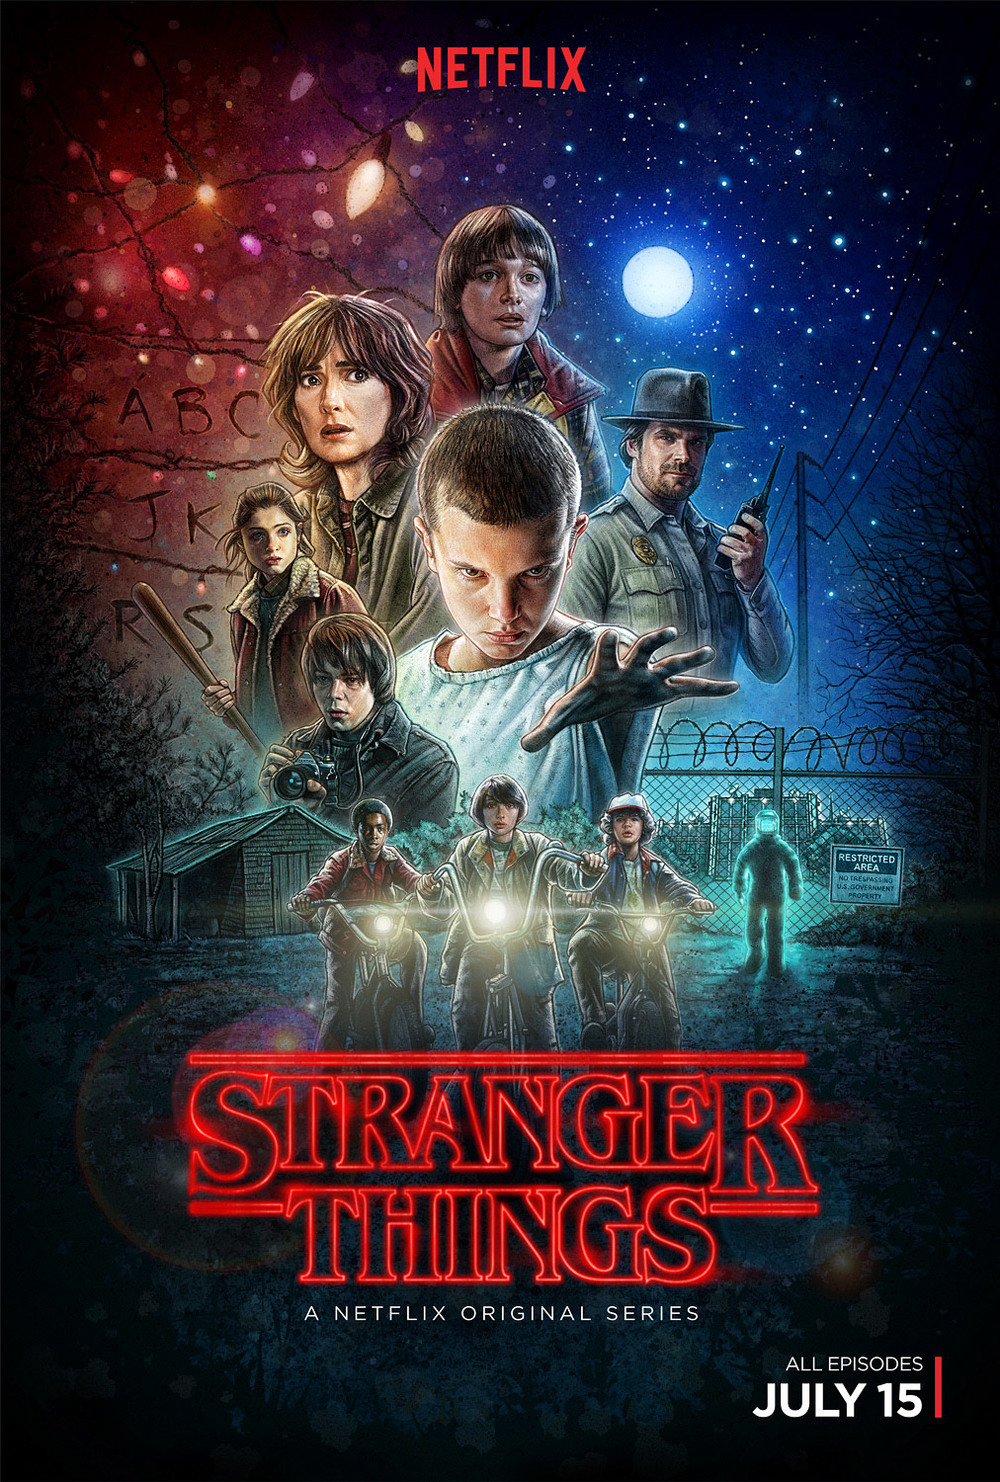 The official Stranger Things poster by Kyle Lambert